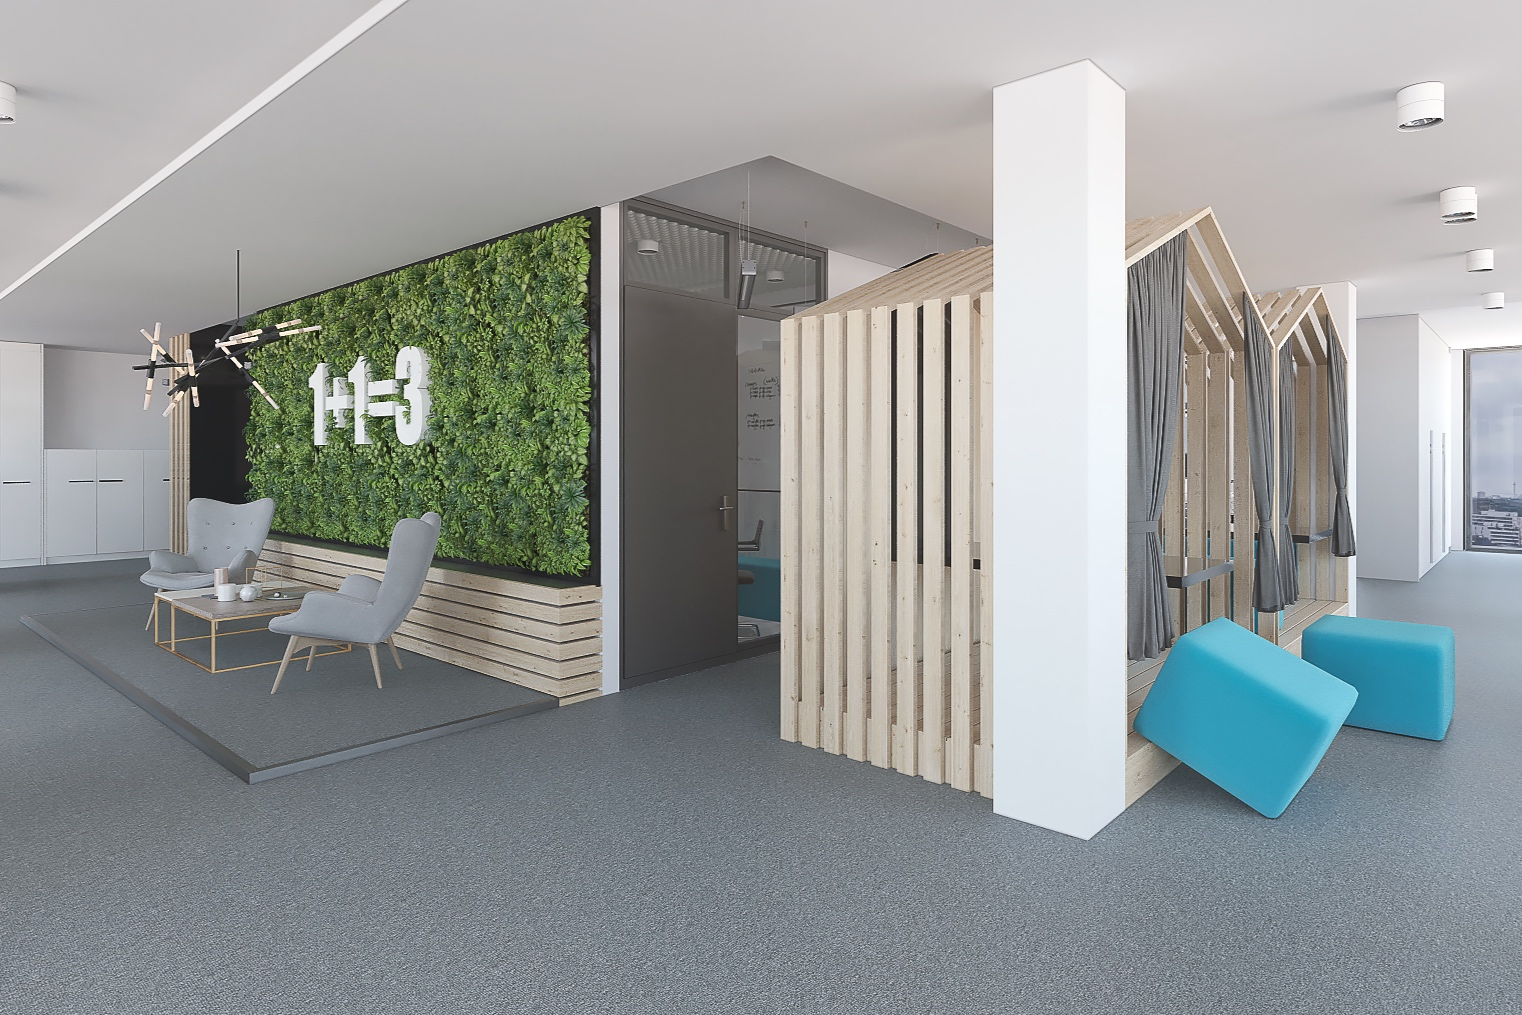 3. Have your space visualised & order